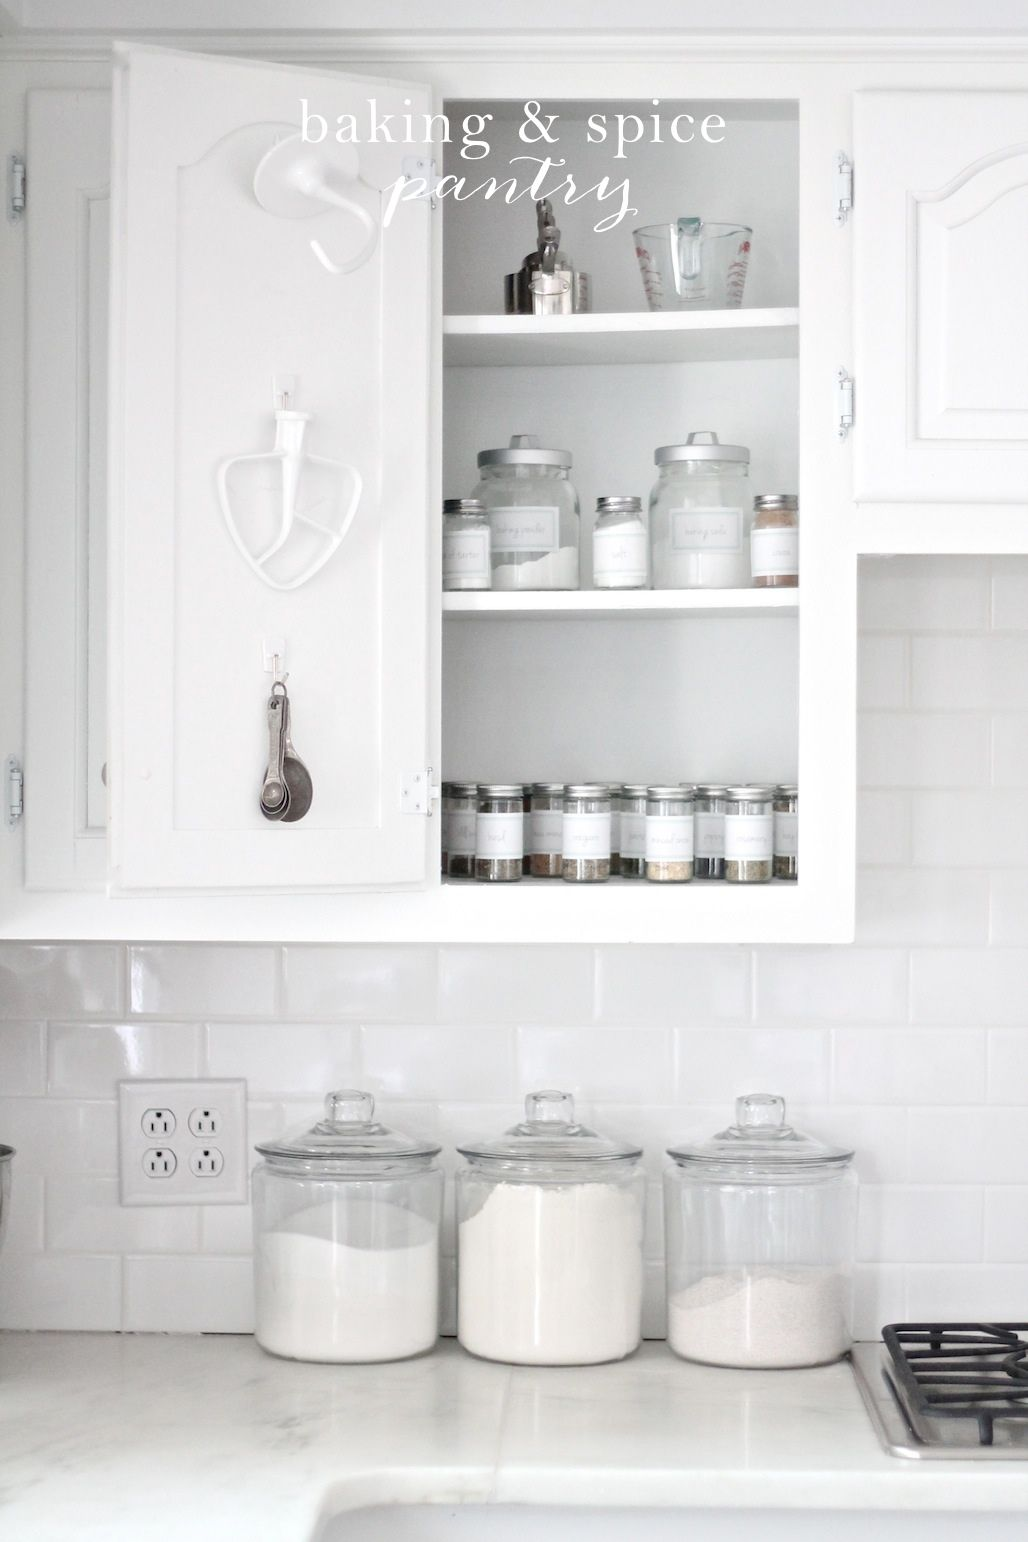 Simple Solutions To Kitchen Organization! Get The Details U0026 Free Printable  Labels For This Baking